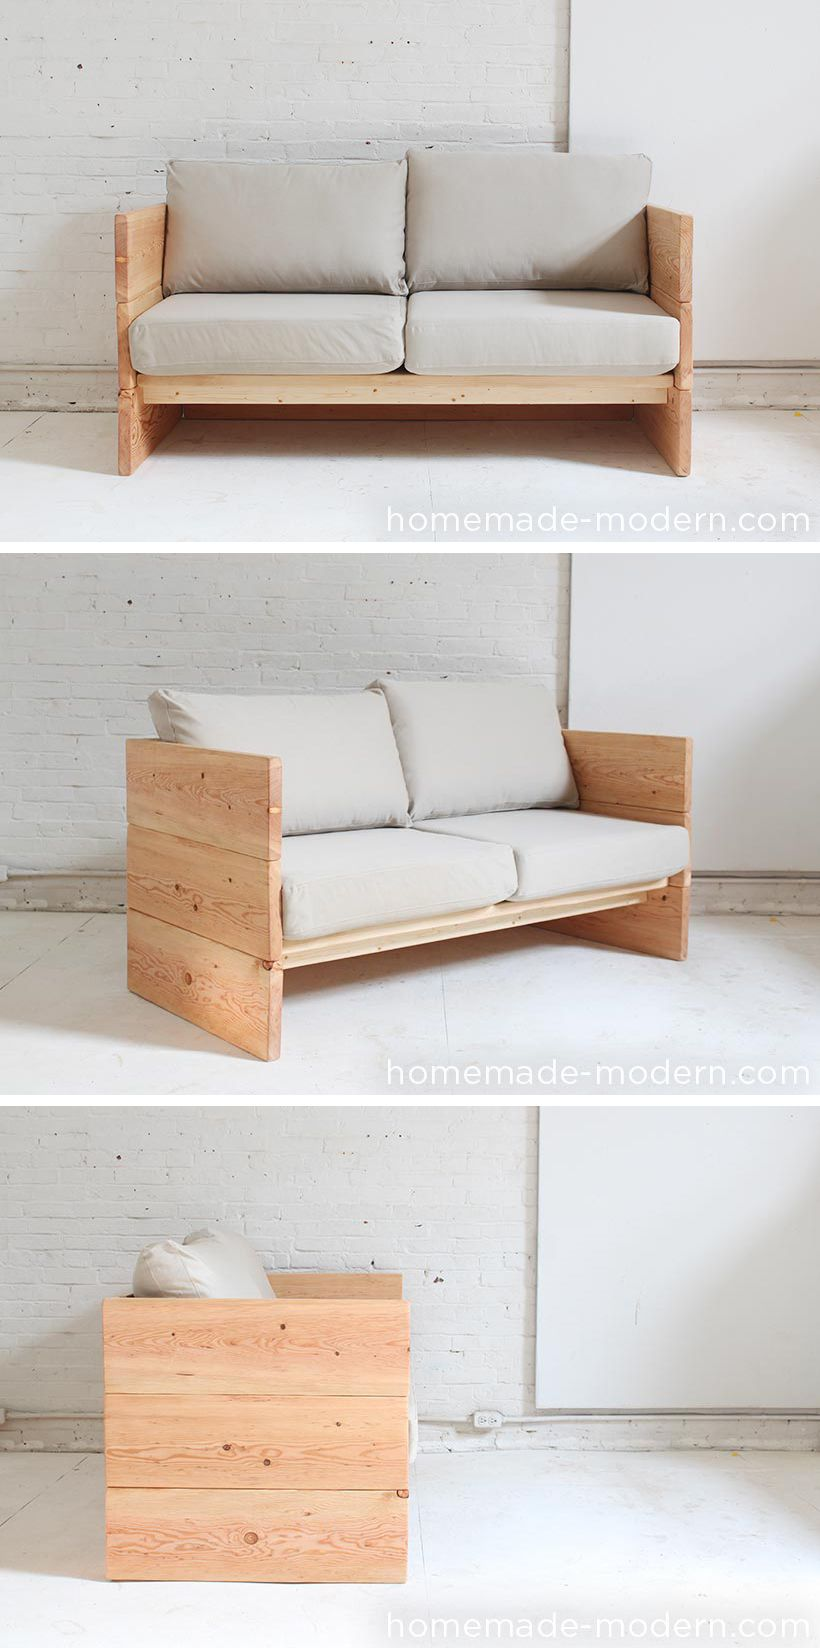 Homemade Furniture Sofa Diy Couch Bed Modern